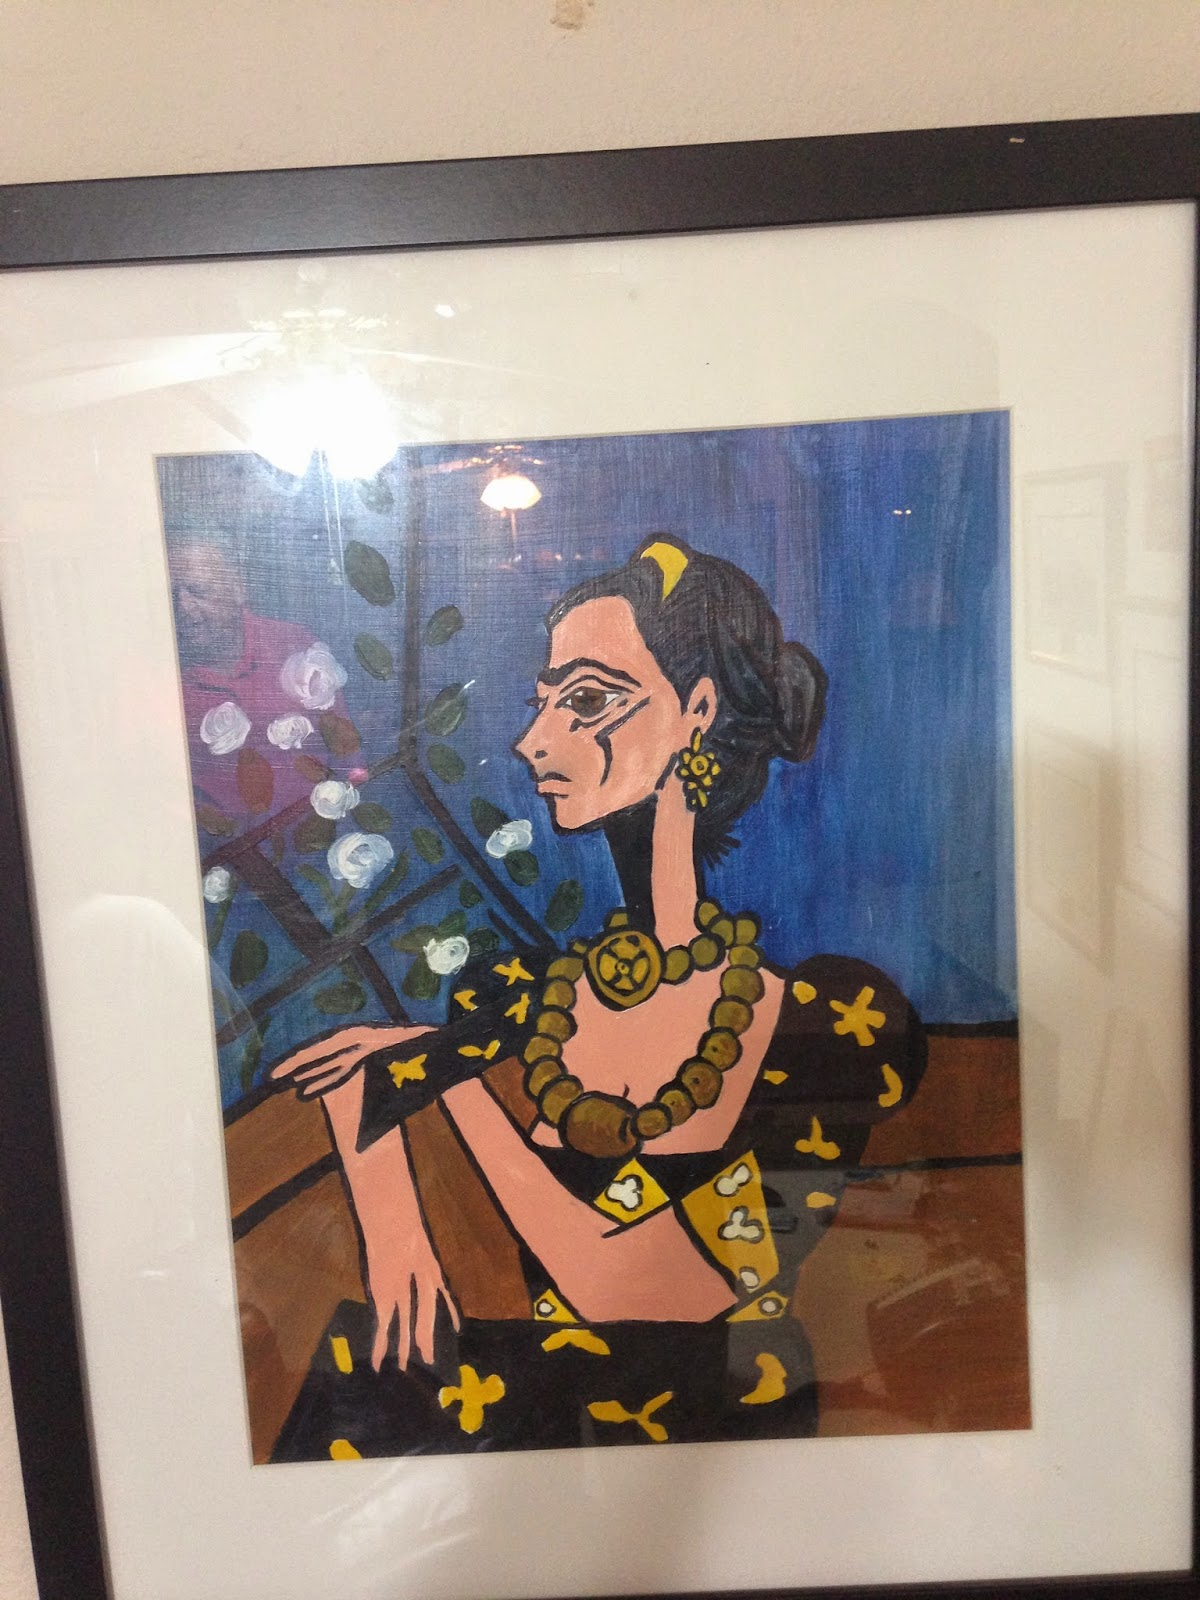 Frida Kahlo in a Picasso Style. Oil on wood, 1980 by F. Lennox Campello